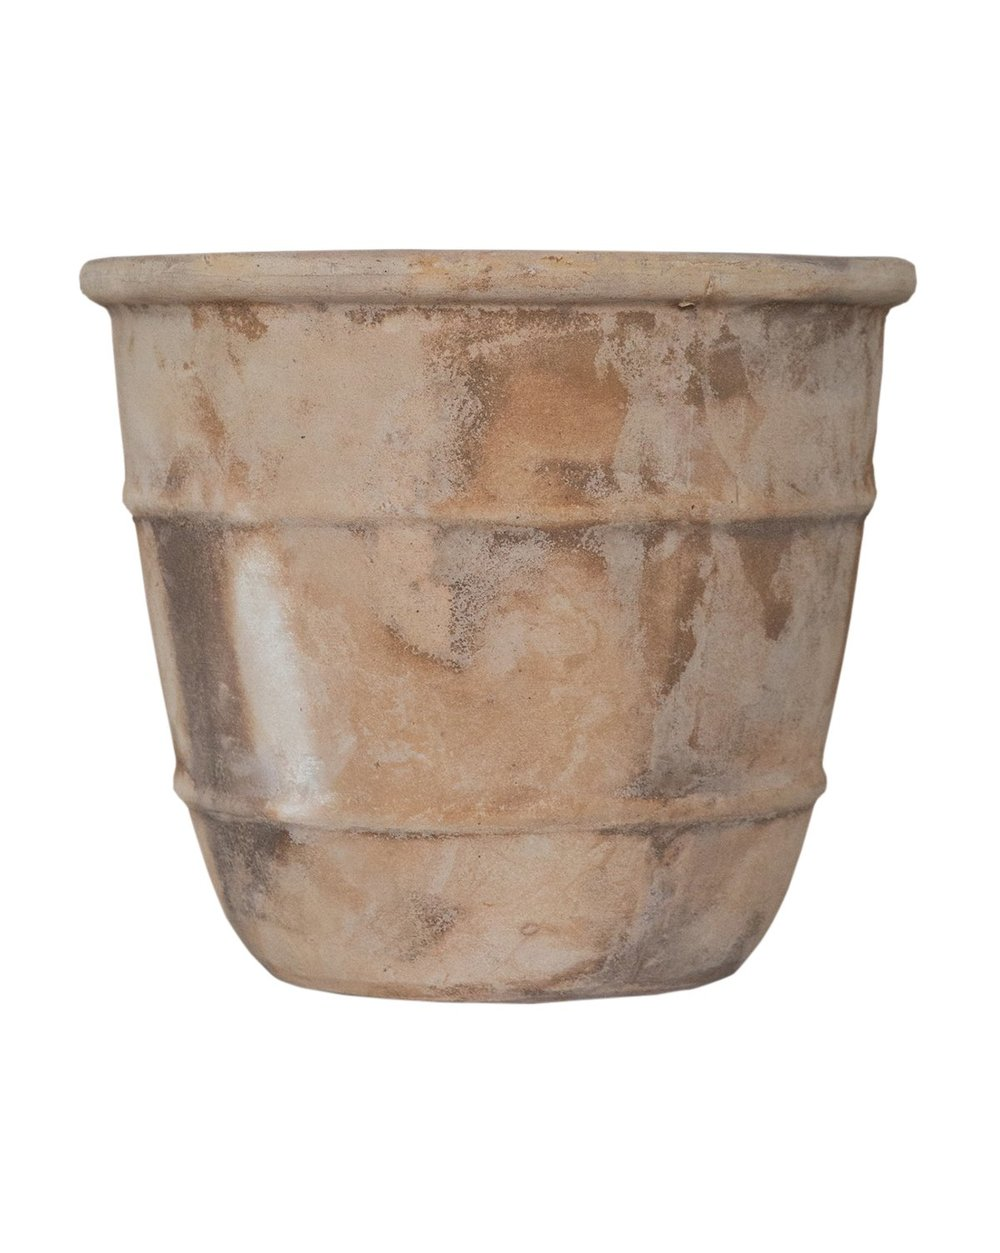 Raw_Terracotta_Planter_1.jpg